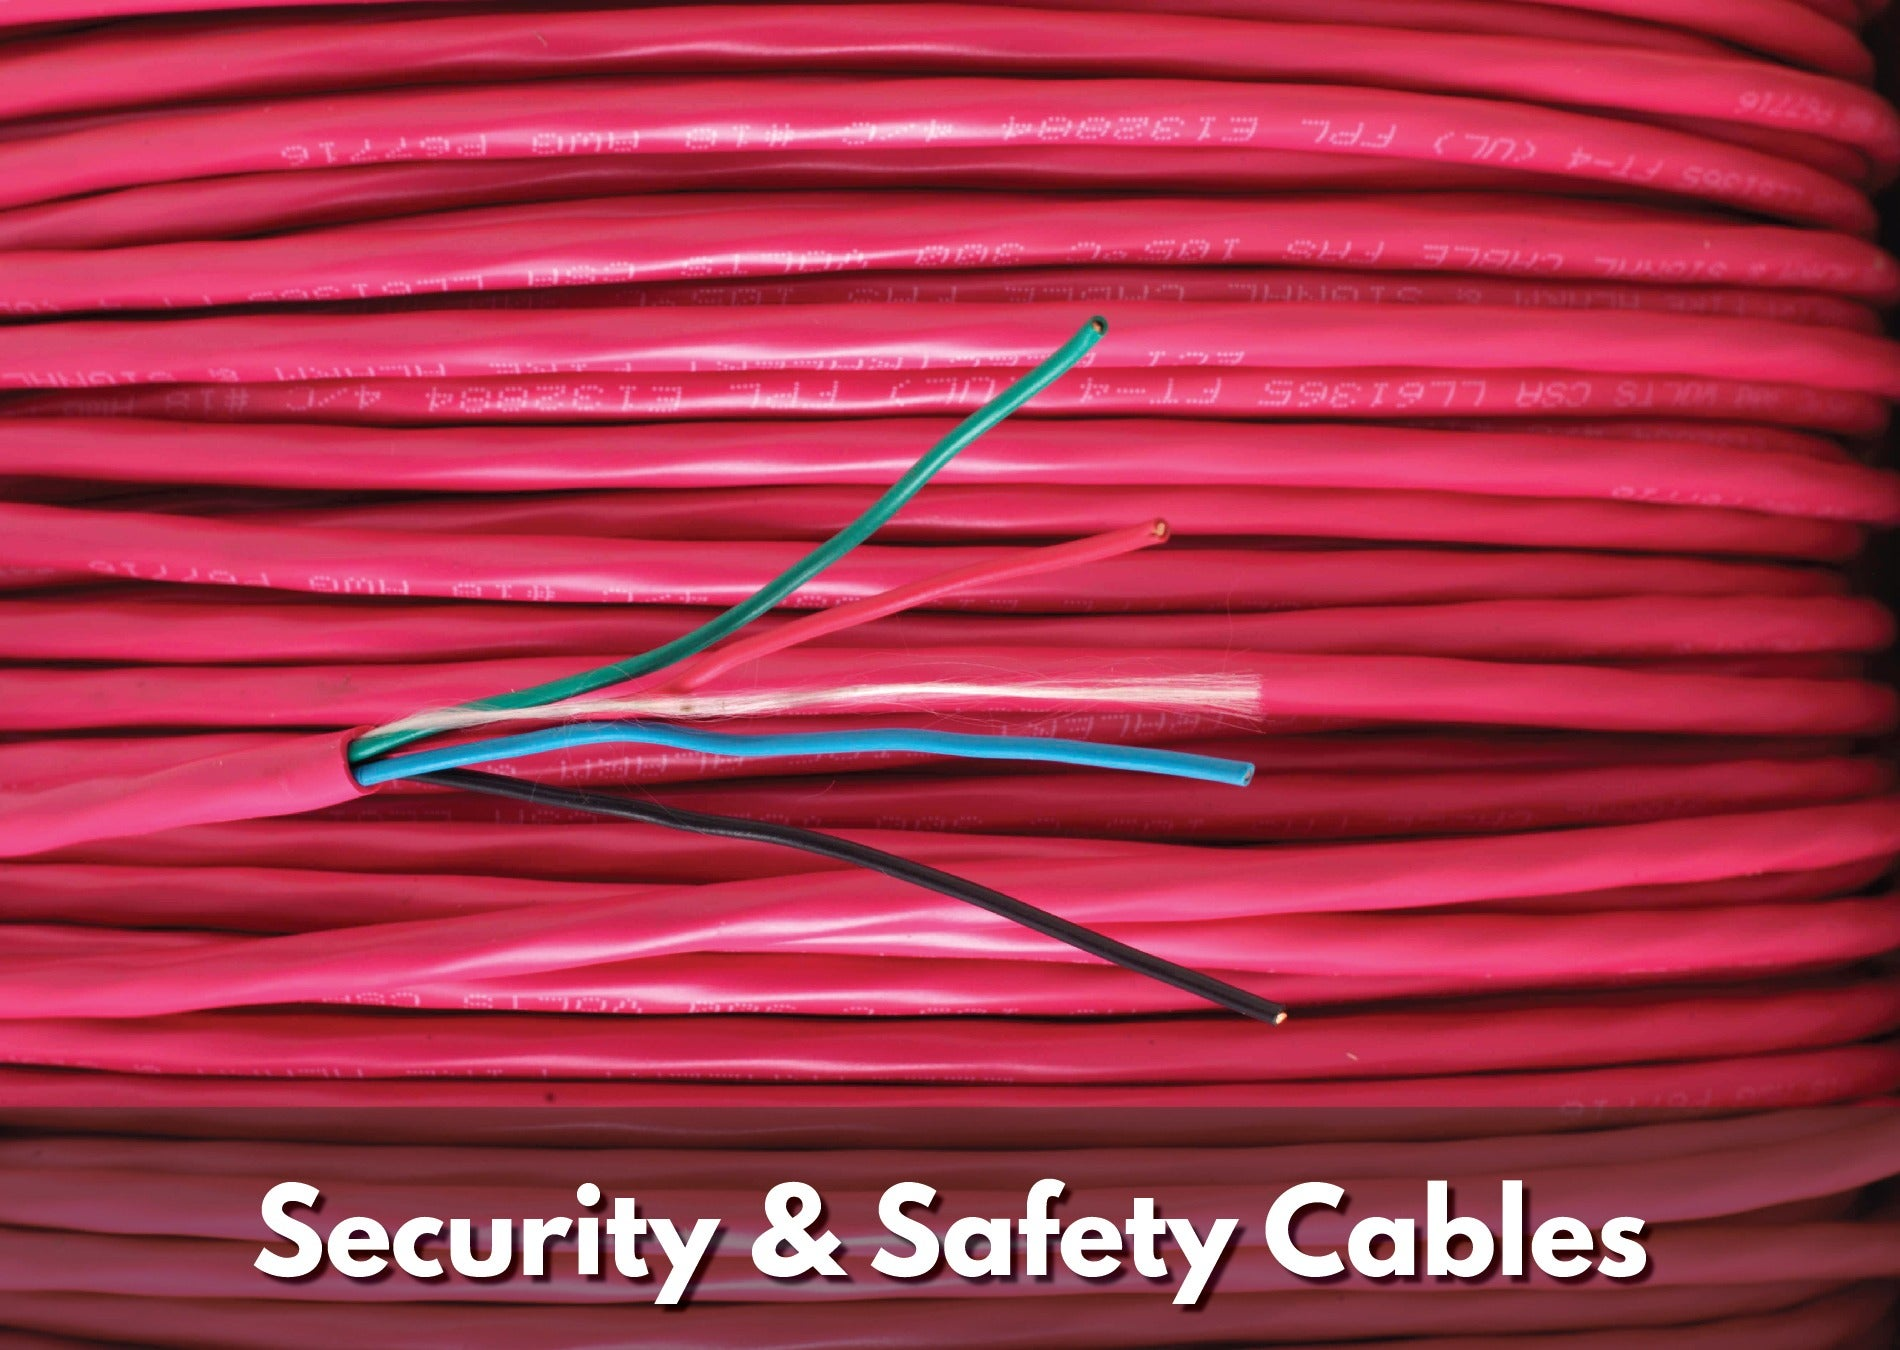 Texcan - View All Products - Security & Safety Cables.jpg